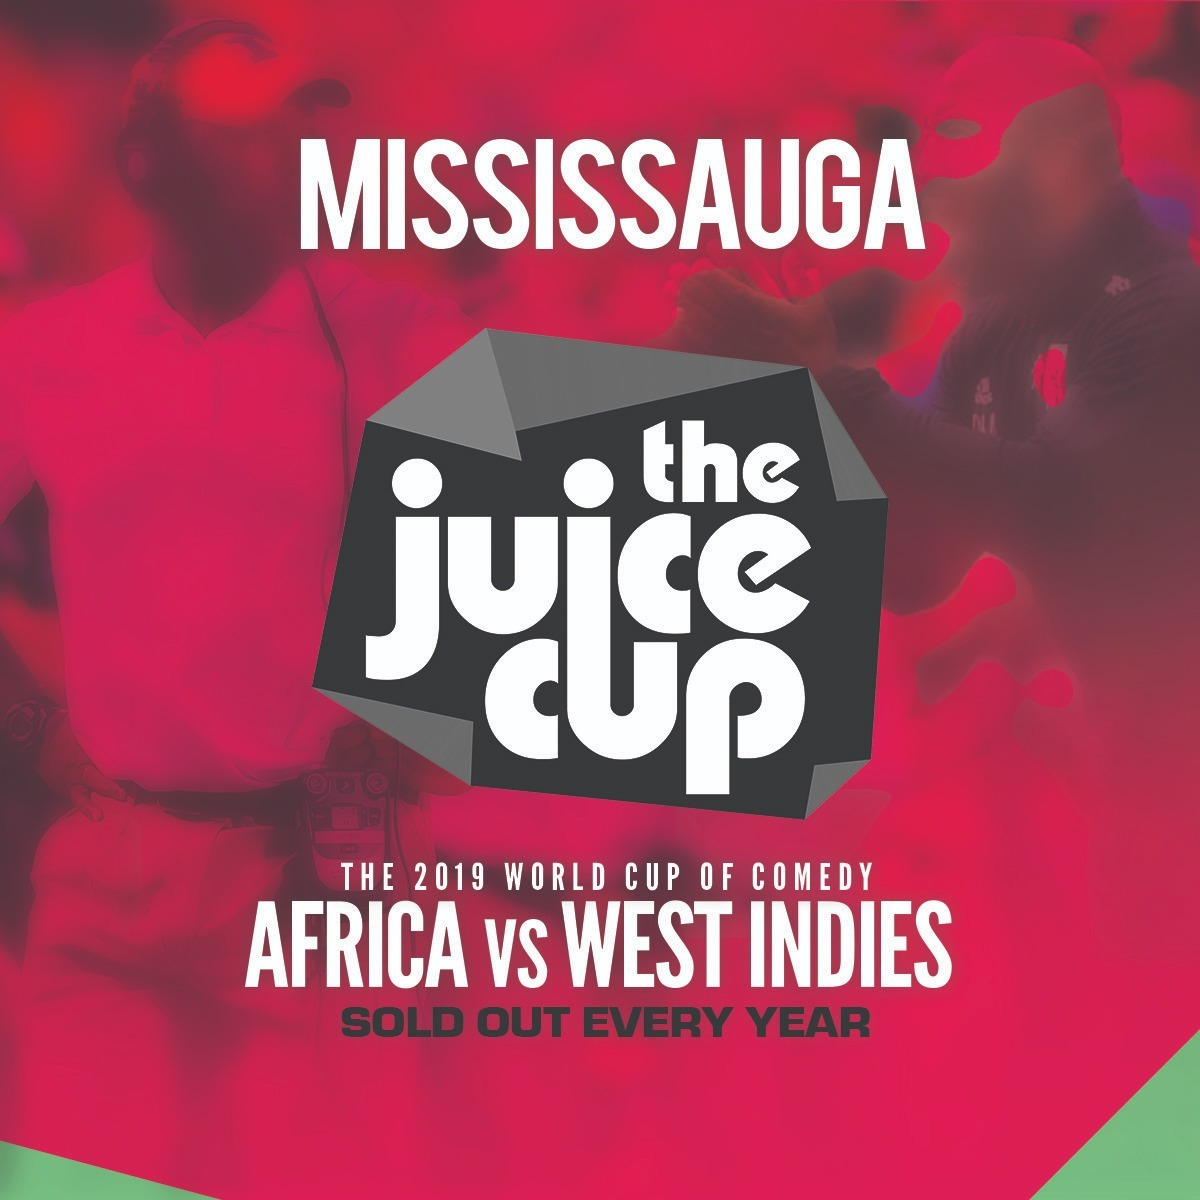 The Juice Cup: Africa Vs West Indies (Mississauga)